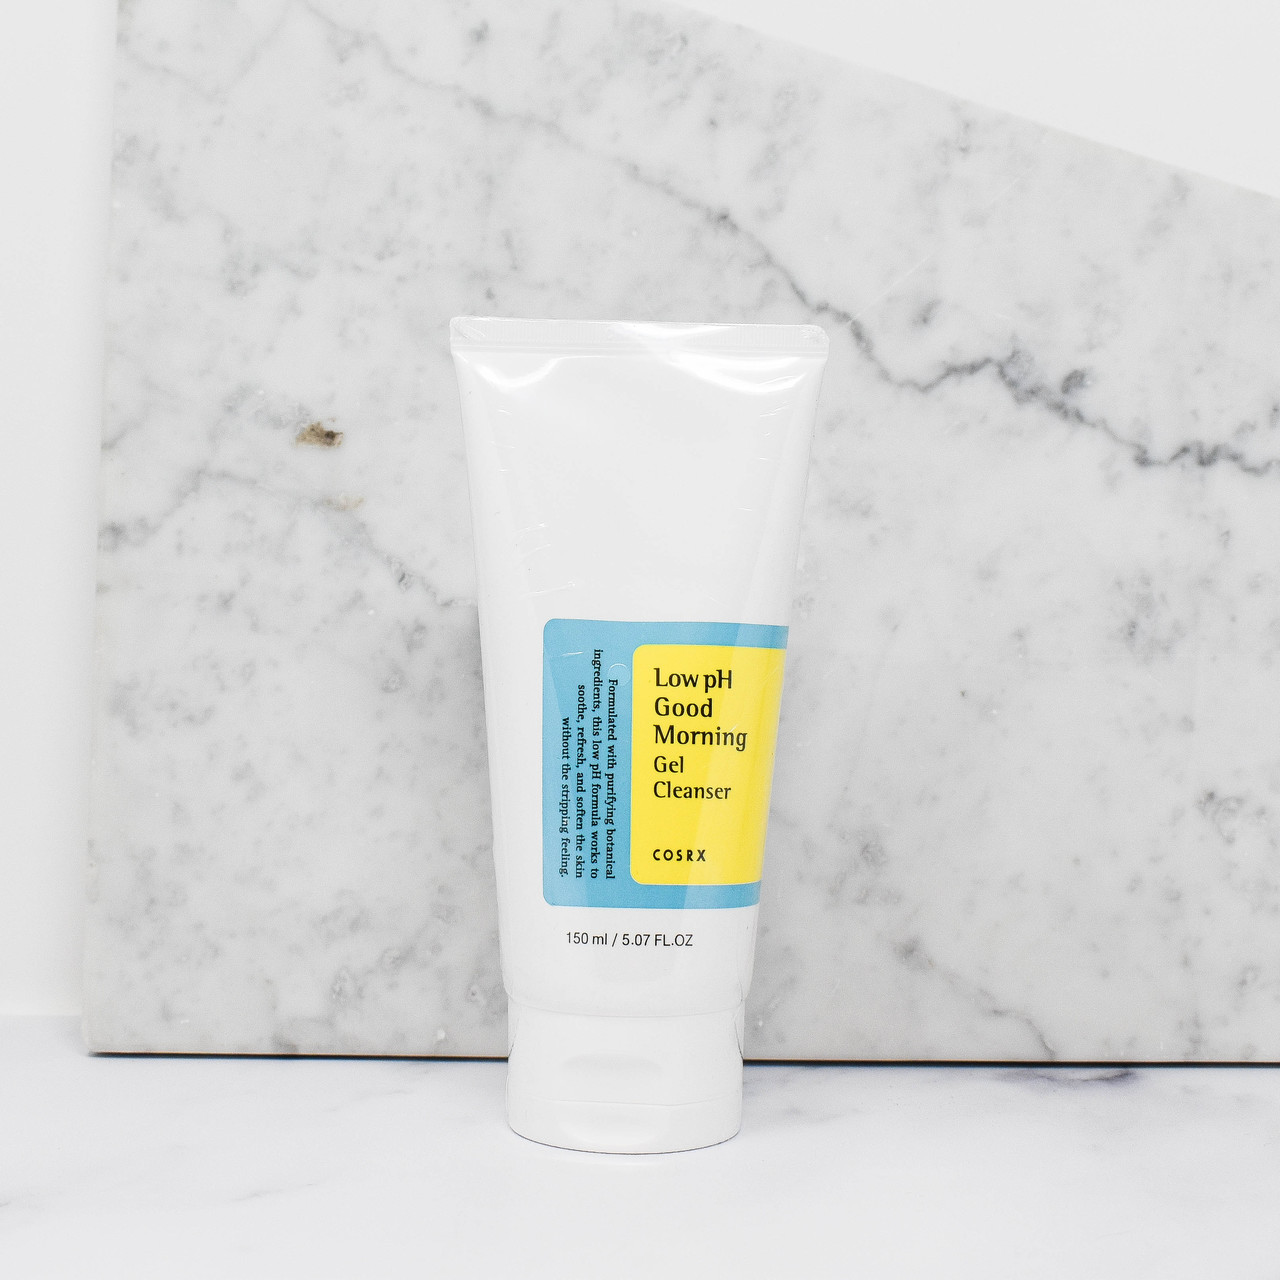 COSRX Low pH Good Morning Gel Cleanser ($12) - Perfect for that refreshed, plump morning skin.